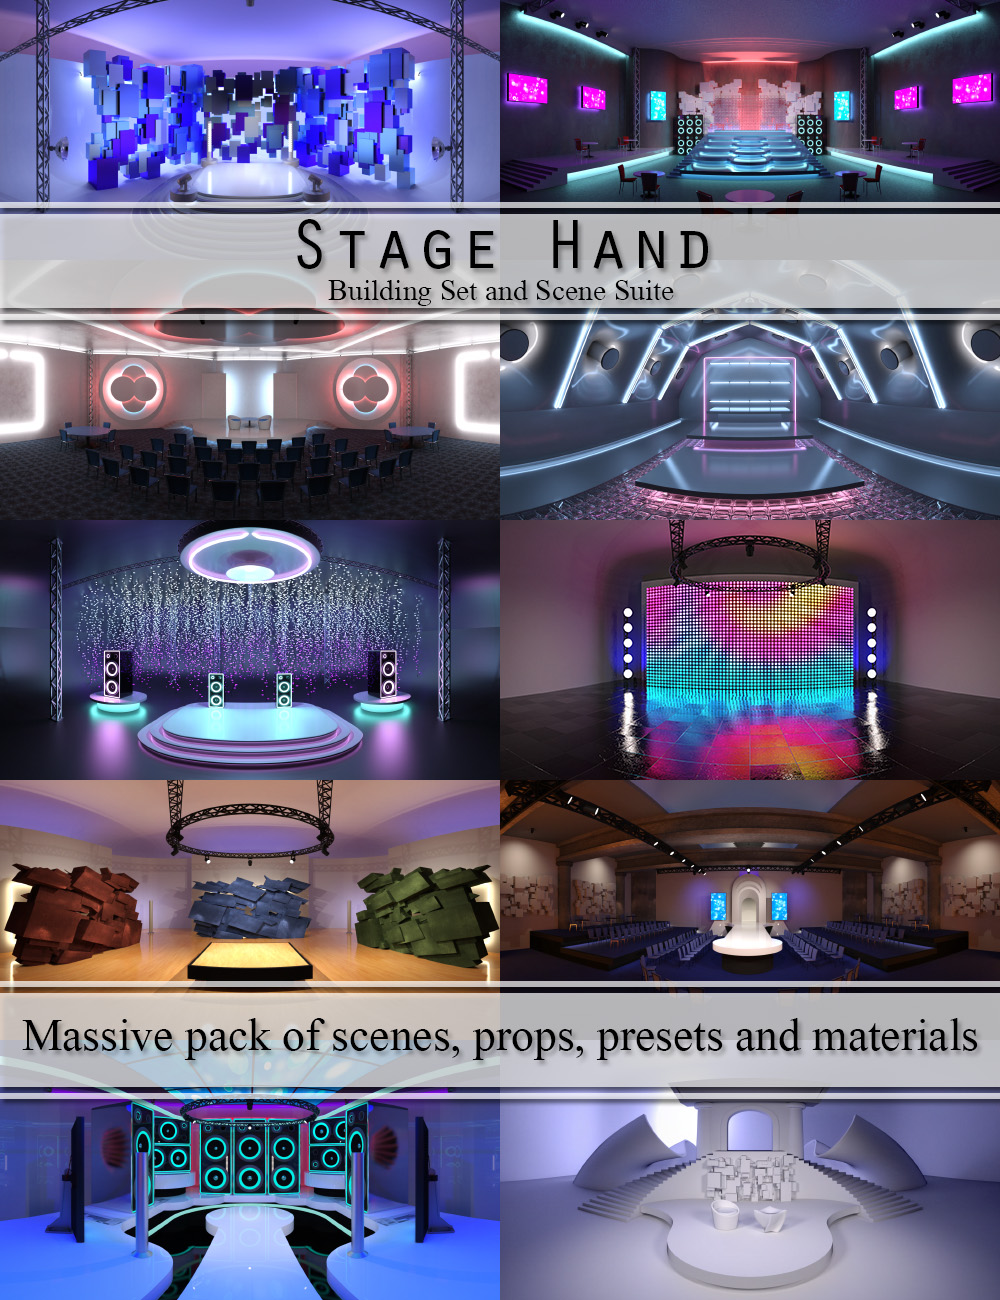 Stage Hand - Building Set and Scene Suite by: DimensionTheory, 3D Models by Daz 3D